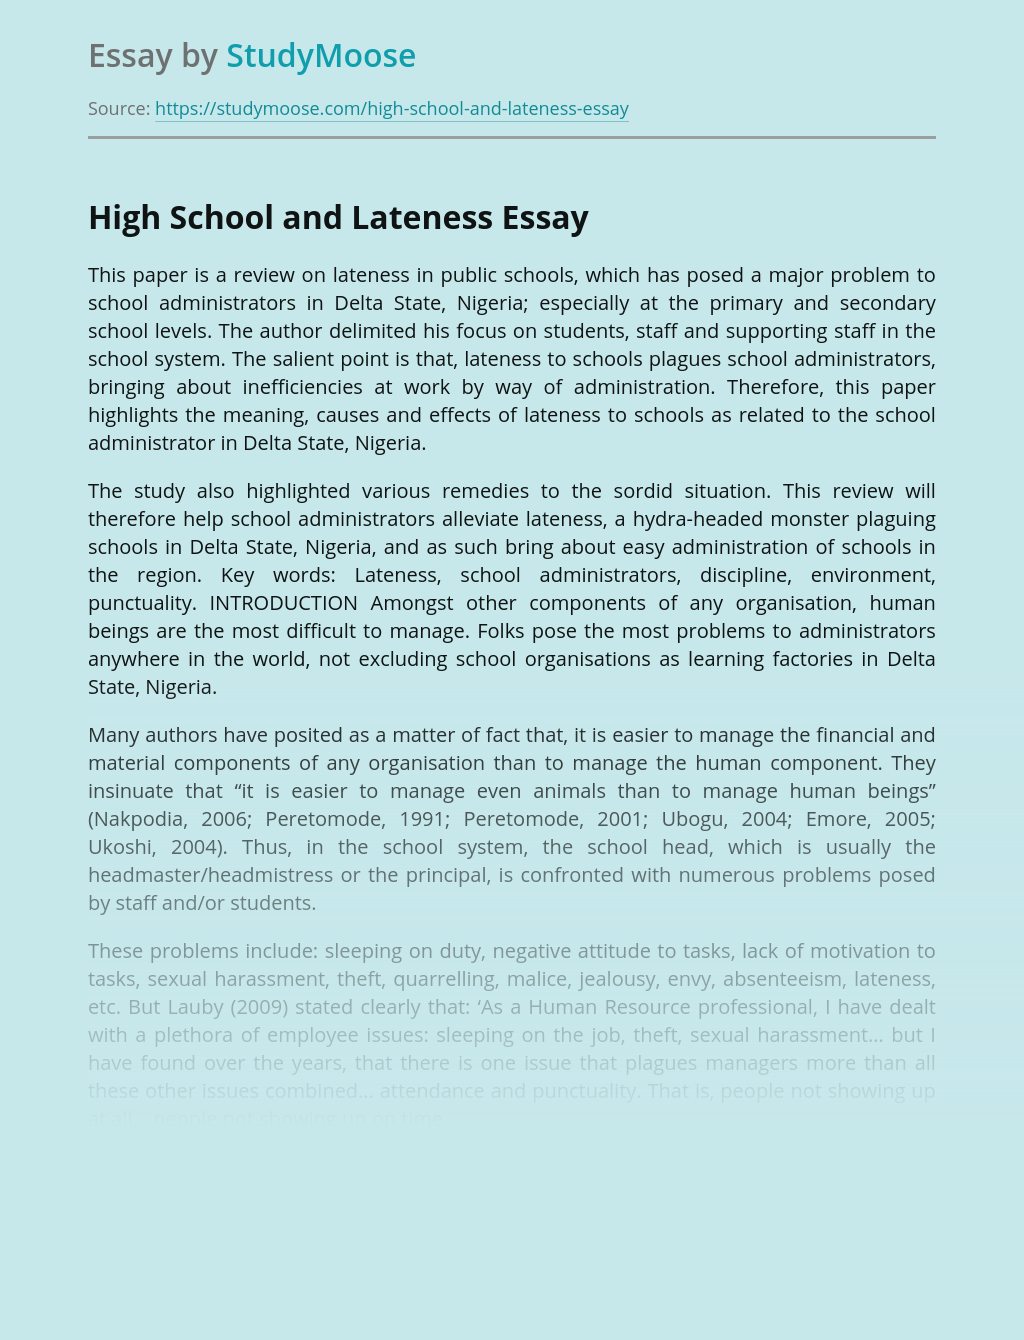 High School and Lateness